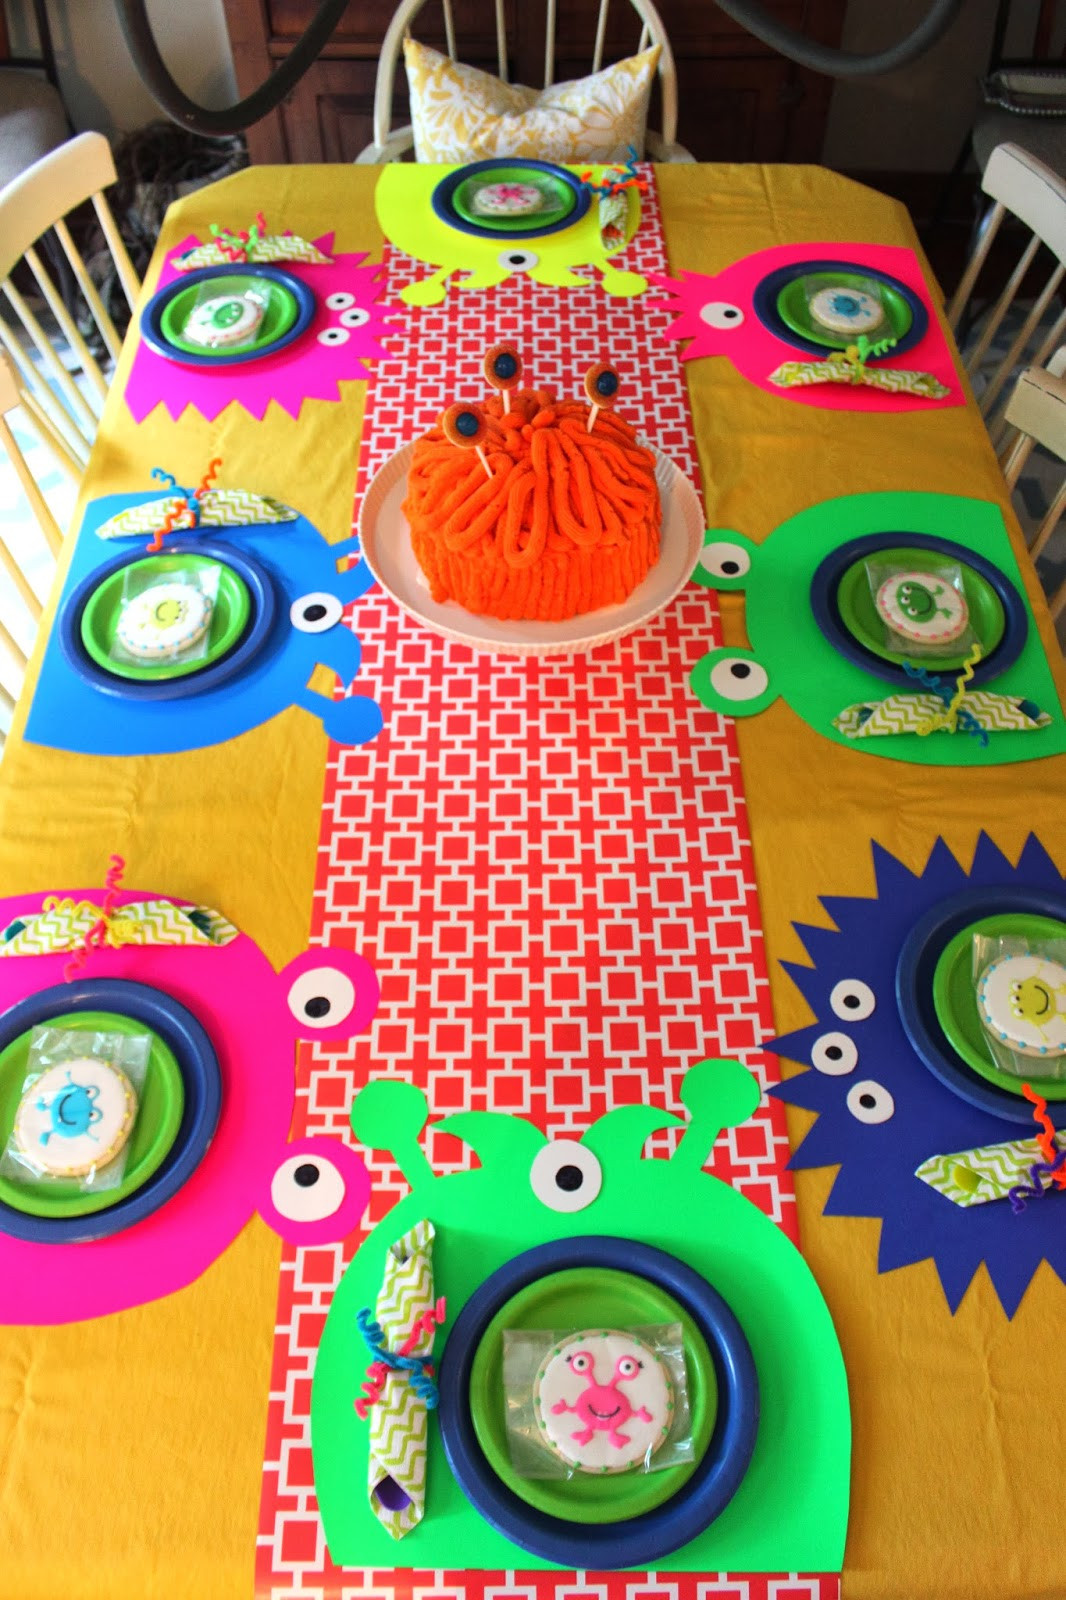 Best ideas about Monster Birthday Decorations . Save or Pin CREATE STUDIO A Neon Silly Monster Birthday Party Now.